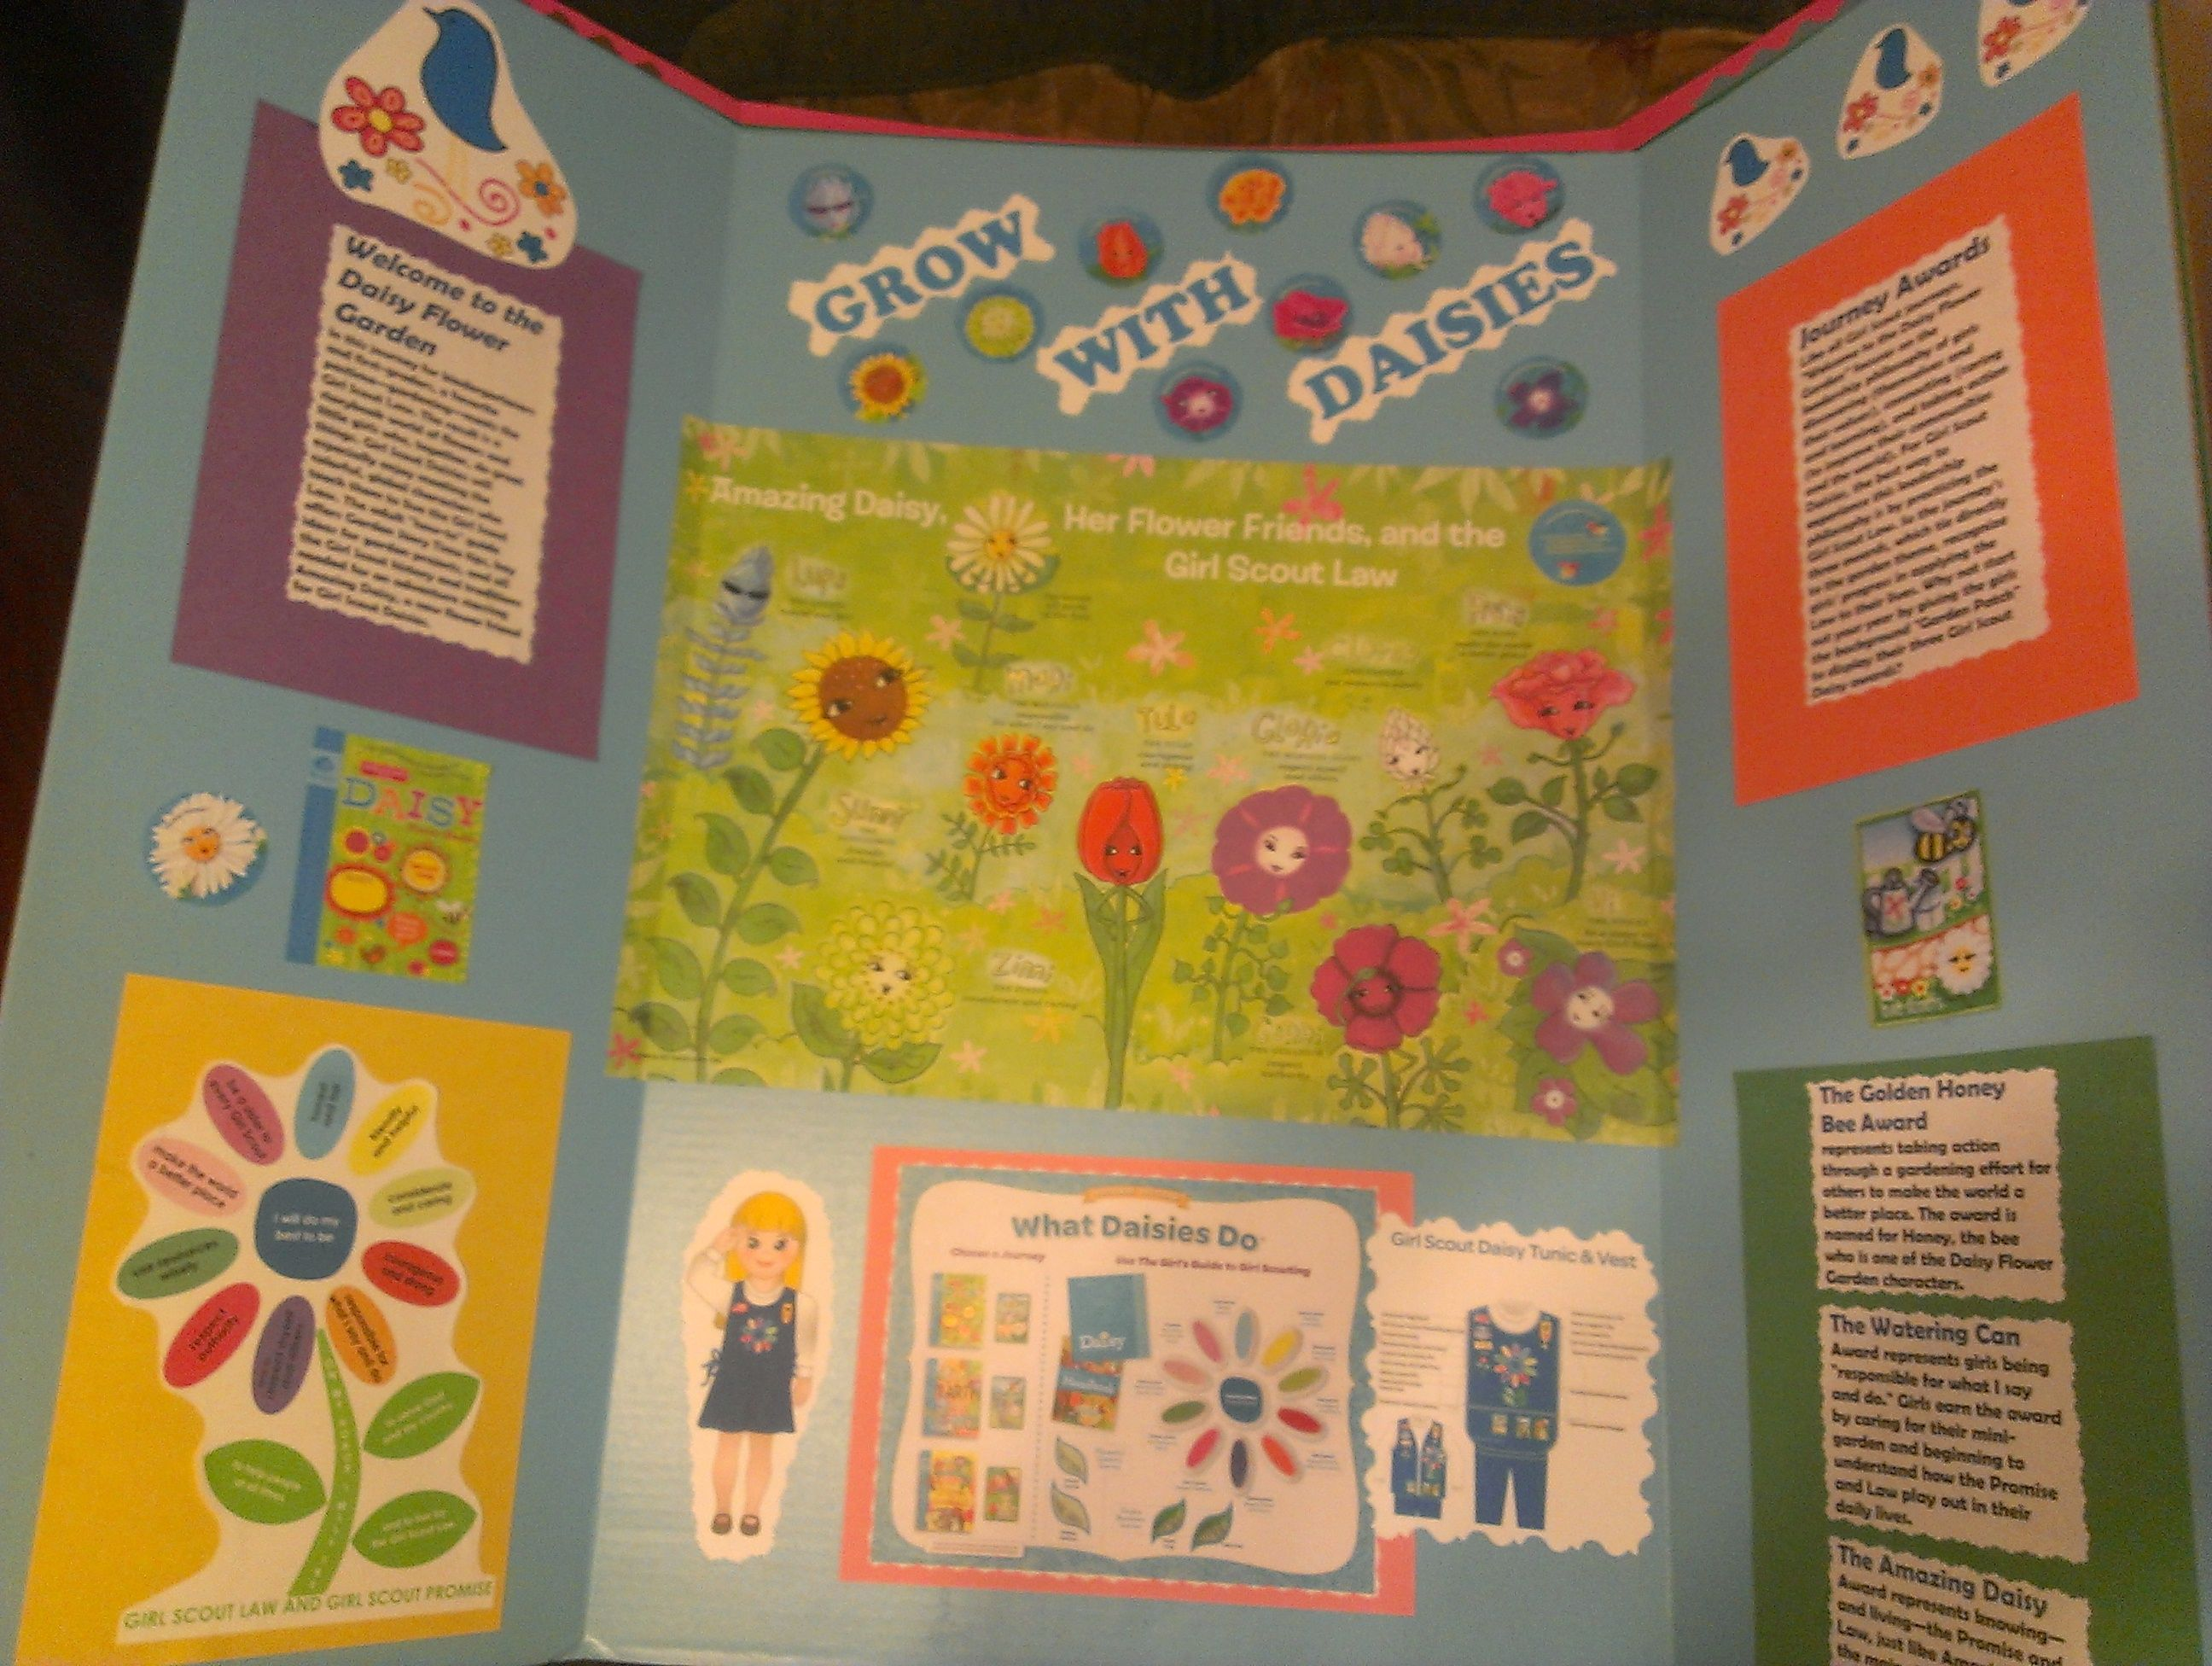 A fold out blue cardboard presentation board with all daisy info a fold out blue cardboard presentation board with all daisy info including the promise law the map from the its your world chang it journey izmirmasajfo